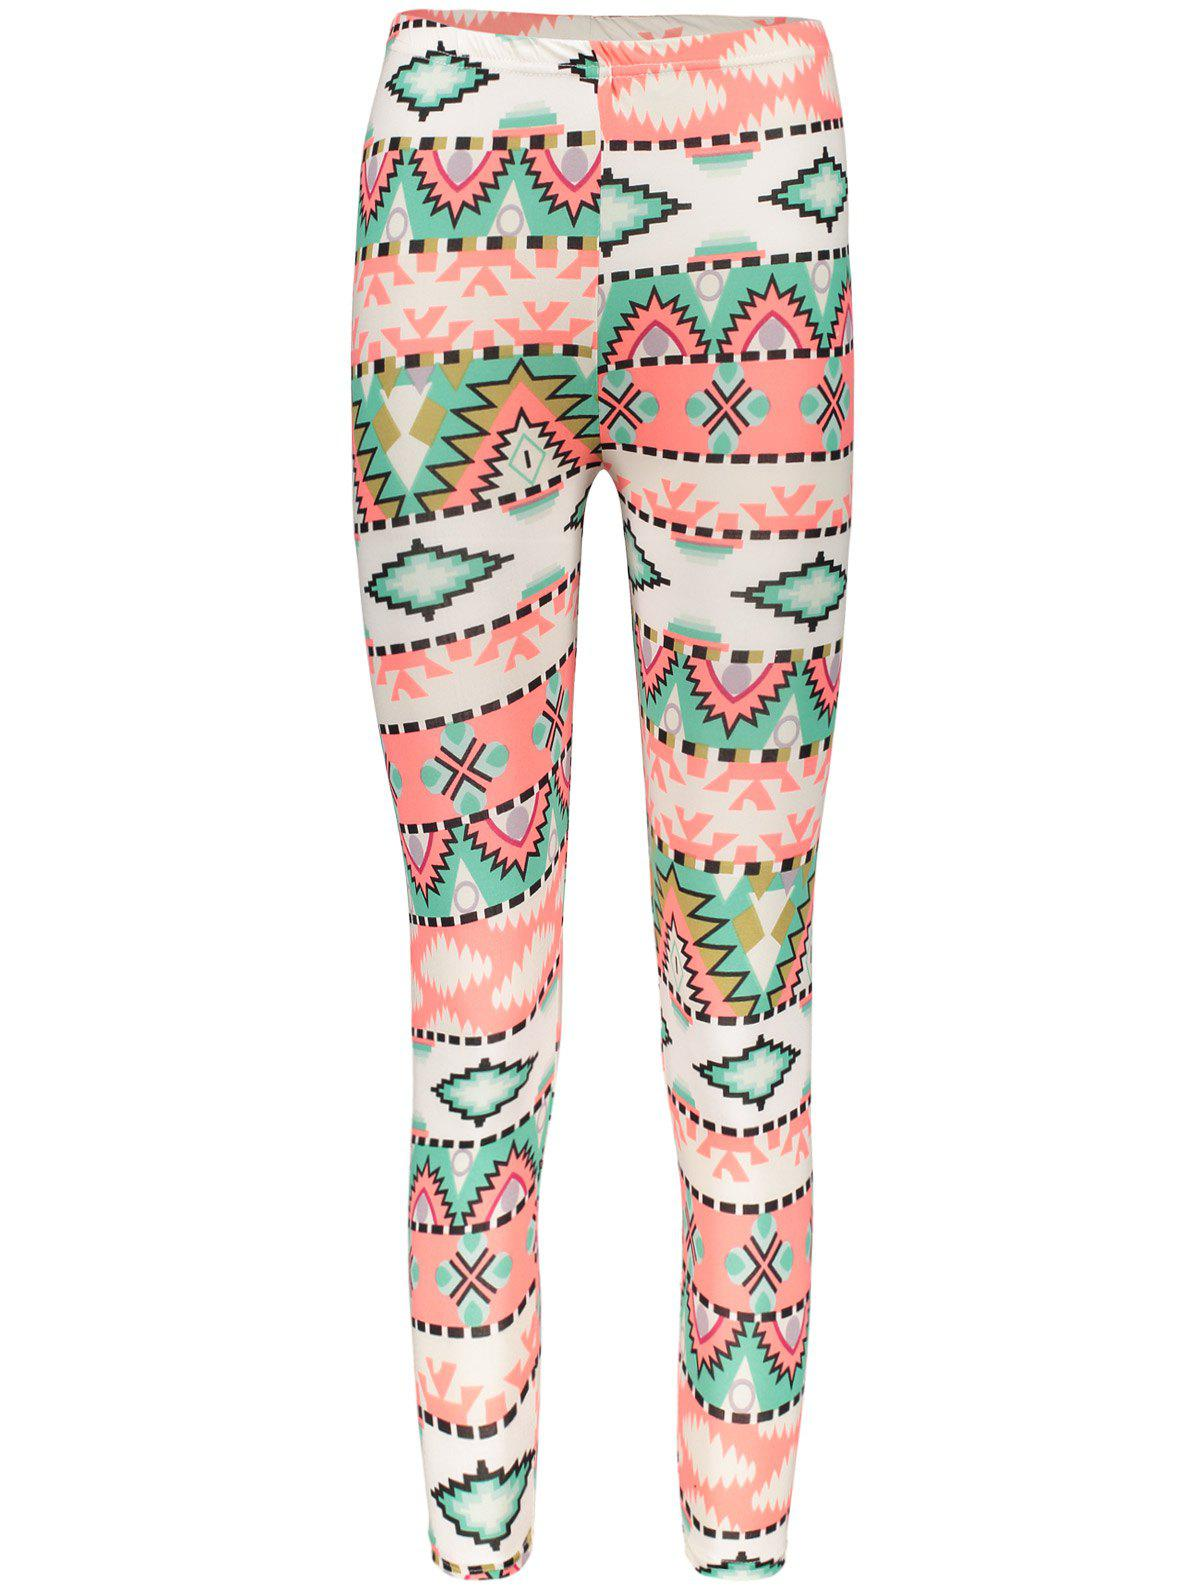 Geometrical Christmas Pattern Leggings For Women - COLORMIX ONE SIZE(FIT SIZE XS TO M)